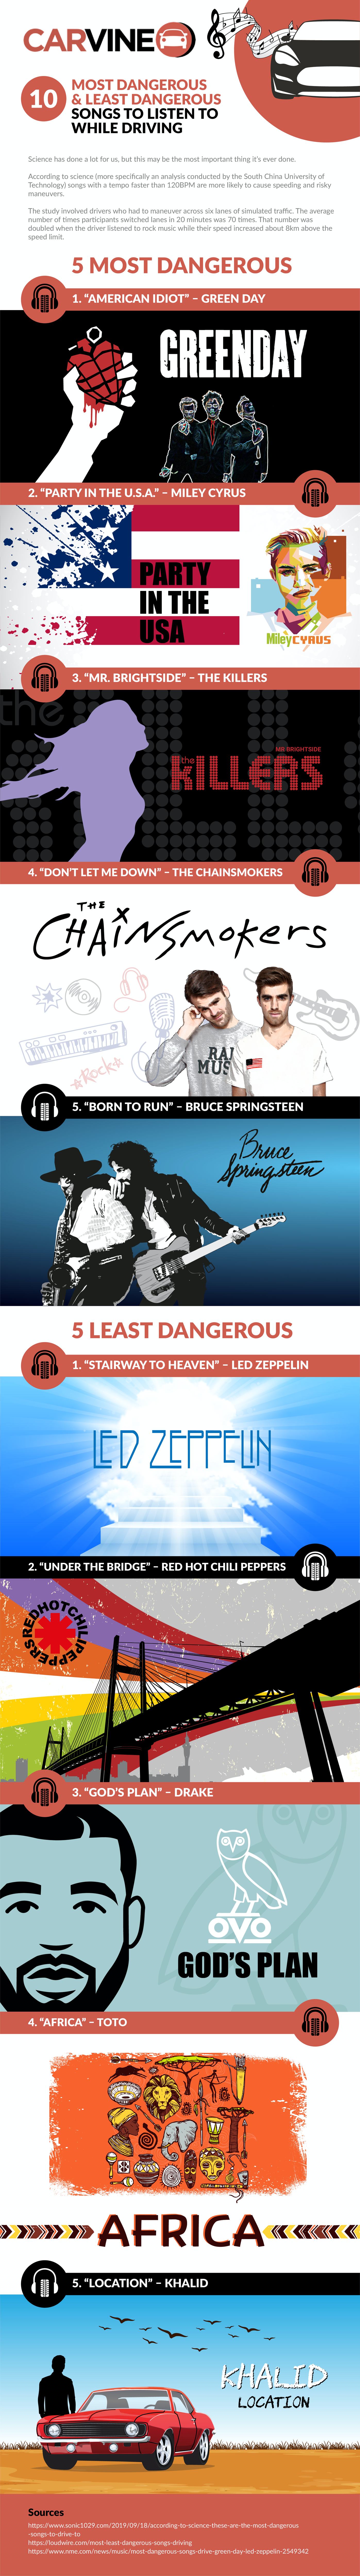 Most Dangerous & Least Dangerous Songs to Listen to While Driving Infographic